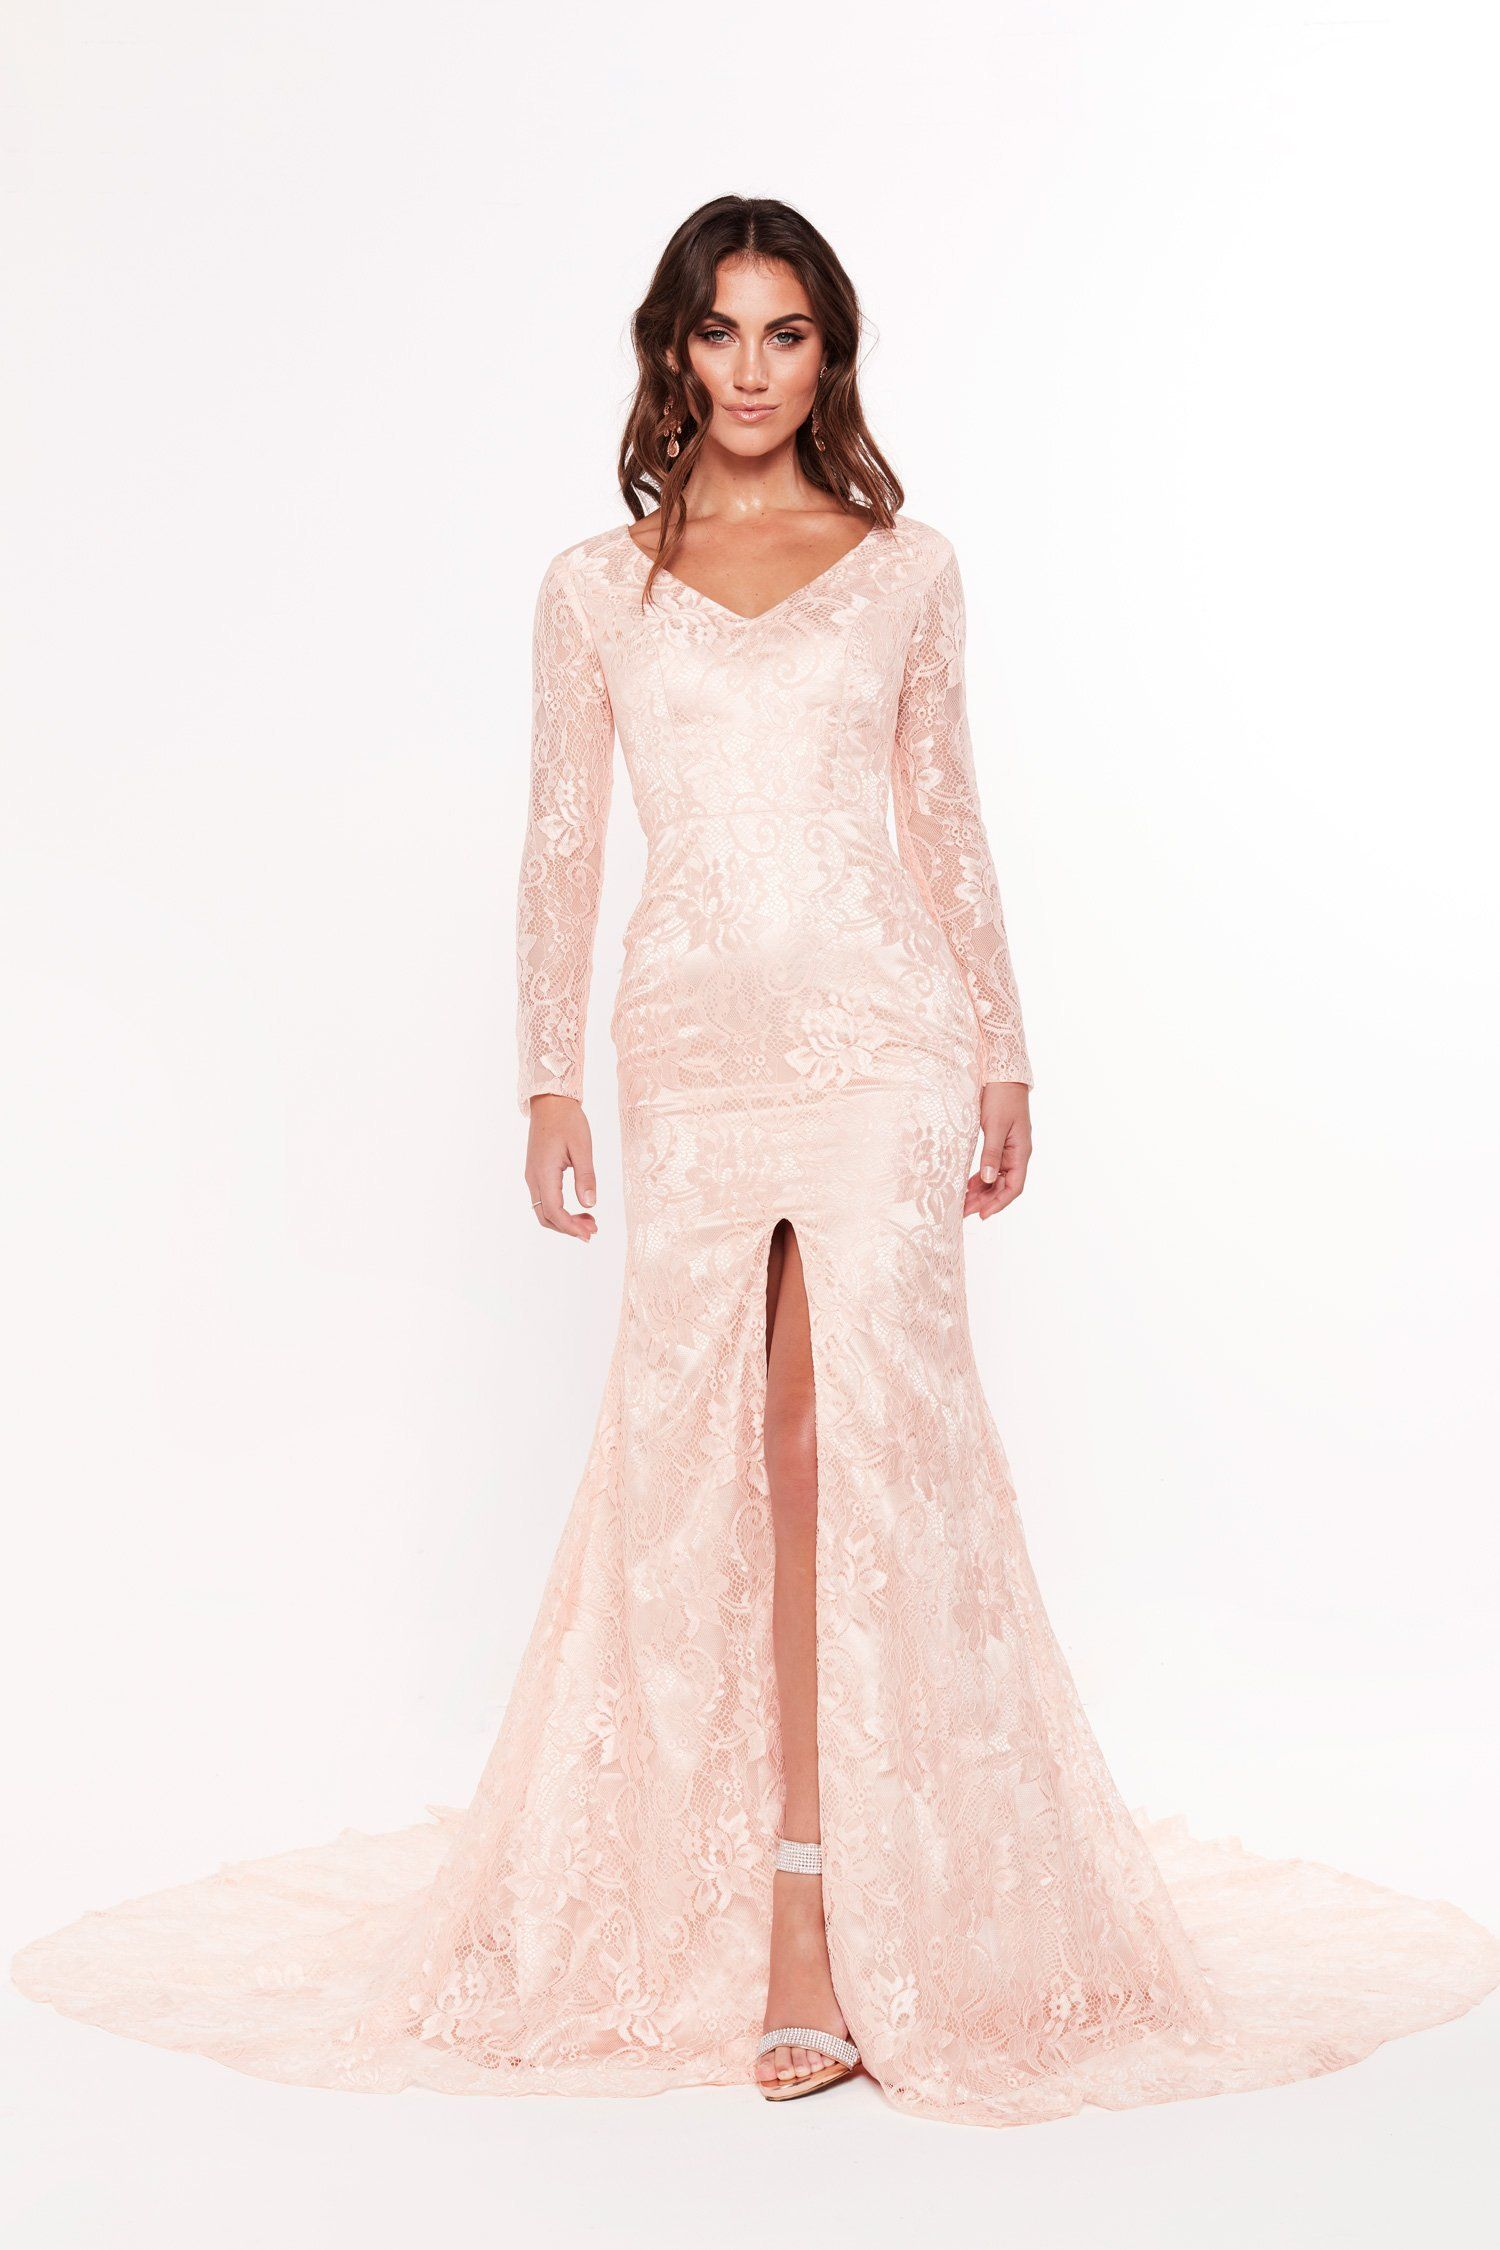 3e0adbdb46 A N Renee Lace Gown - Peach